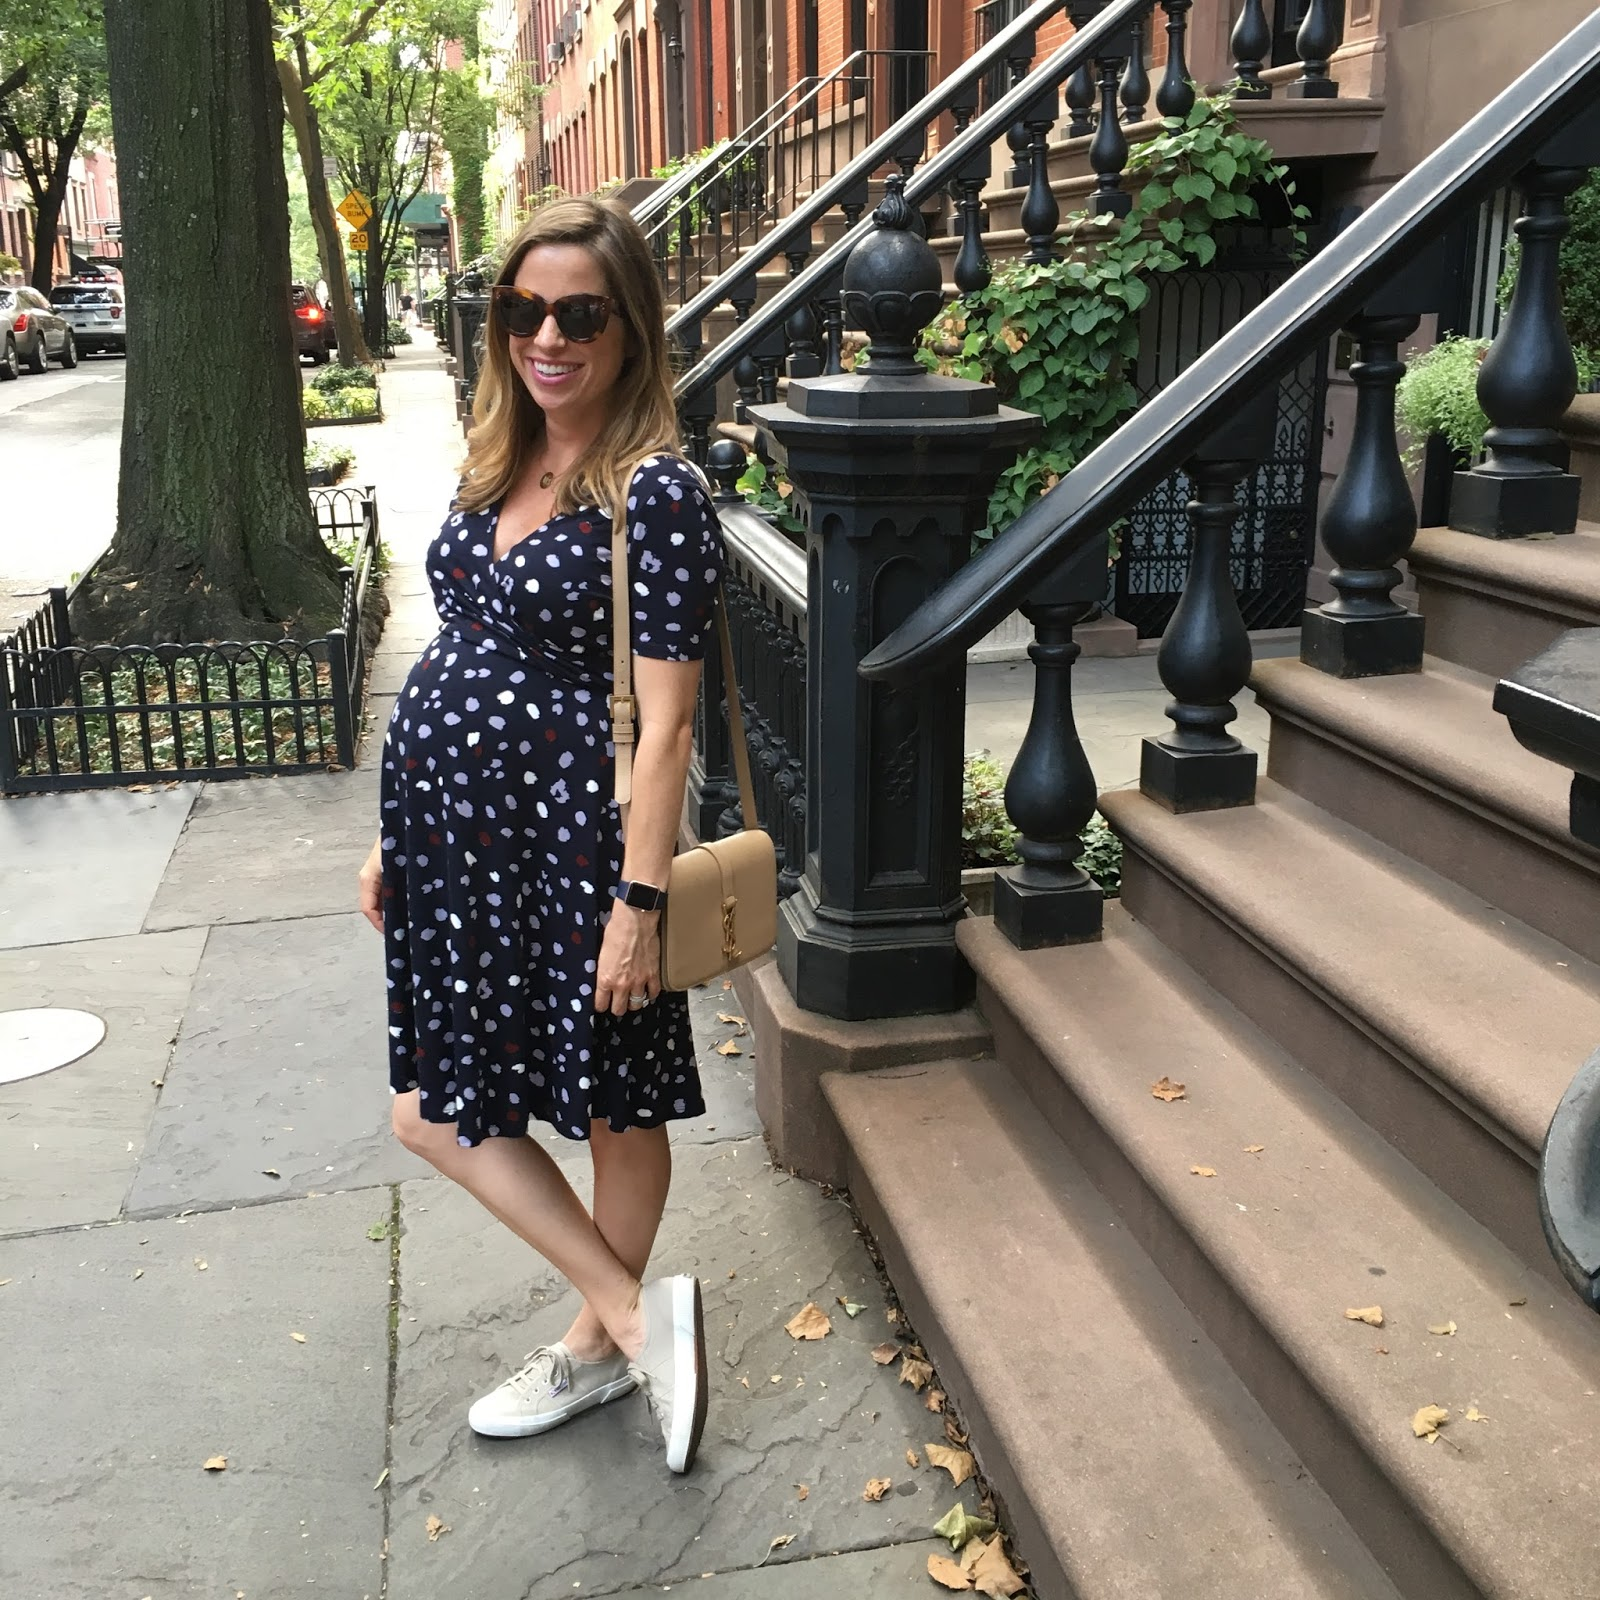 dress and tennis shoes street style